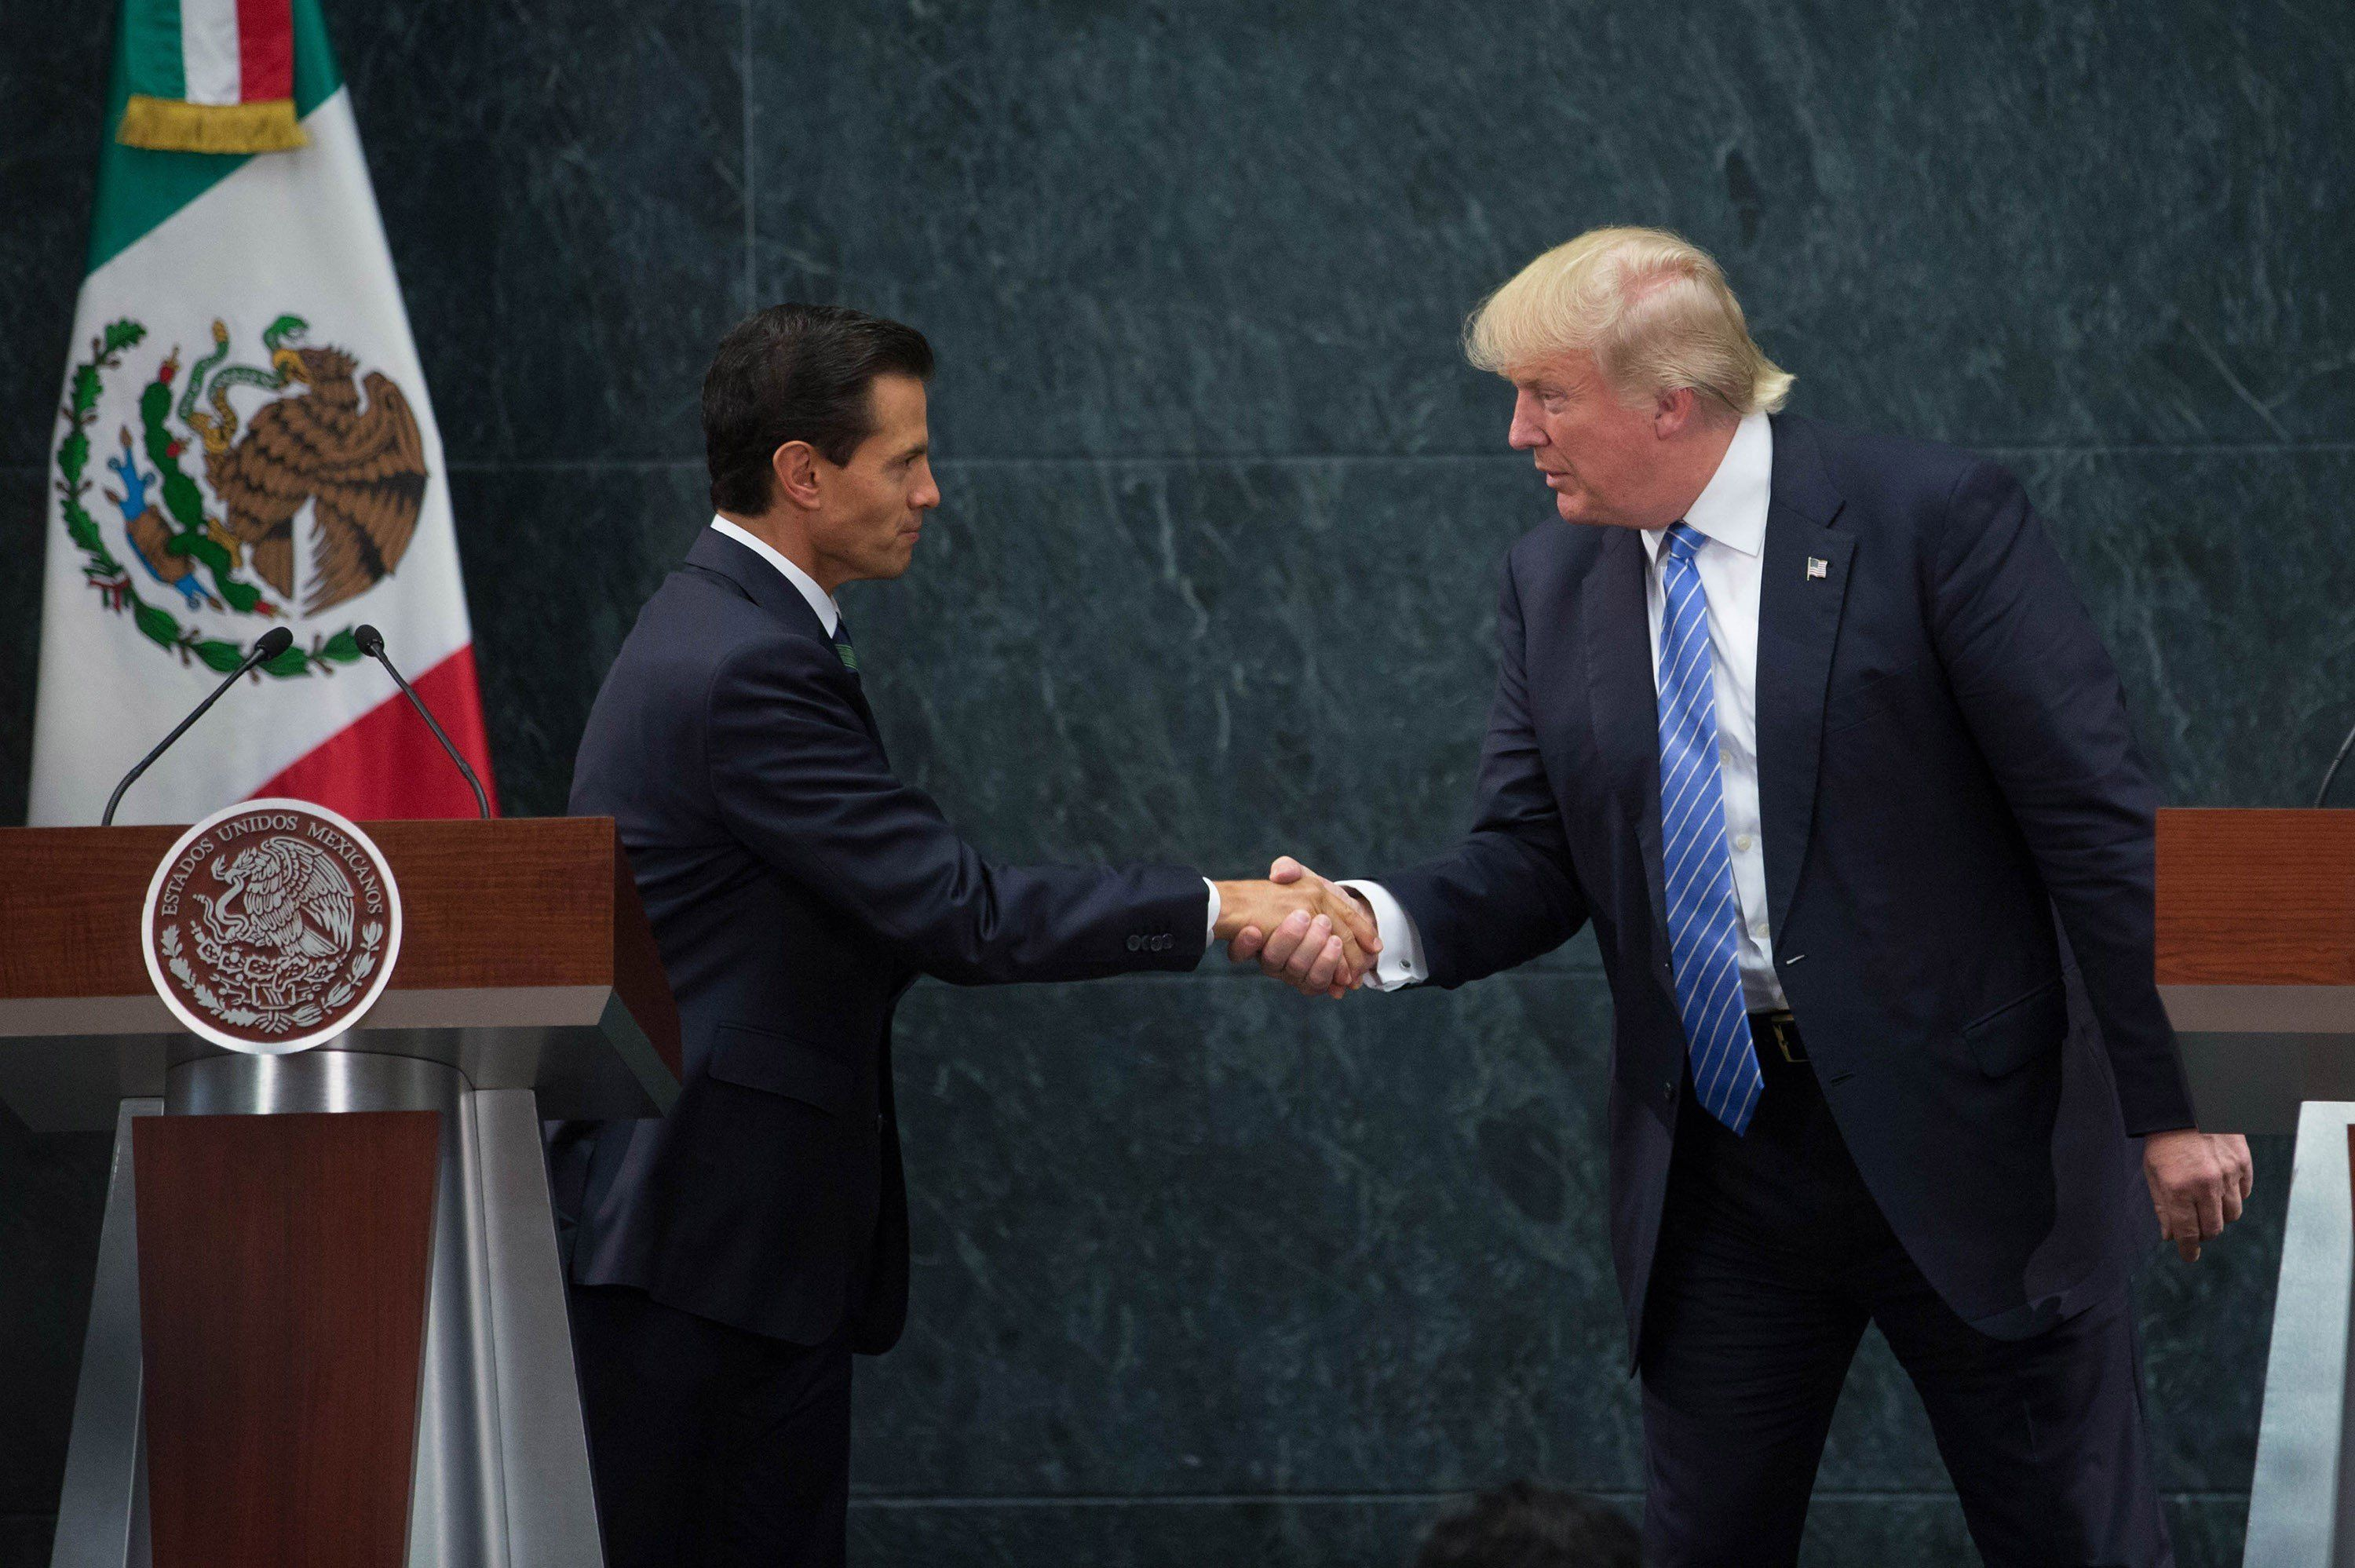 Mexican President Enrique Pena Nieto and U.S. President-elect Donald Trump attendinga meeting in Mexico City on August